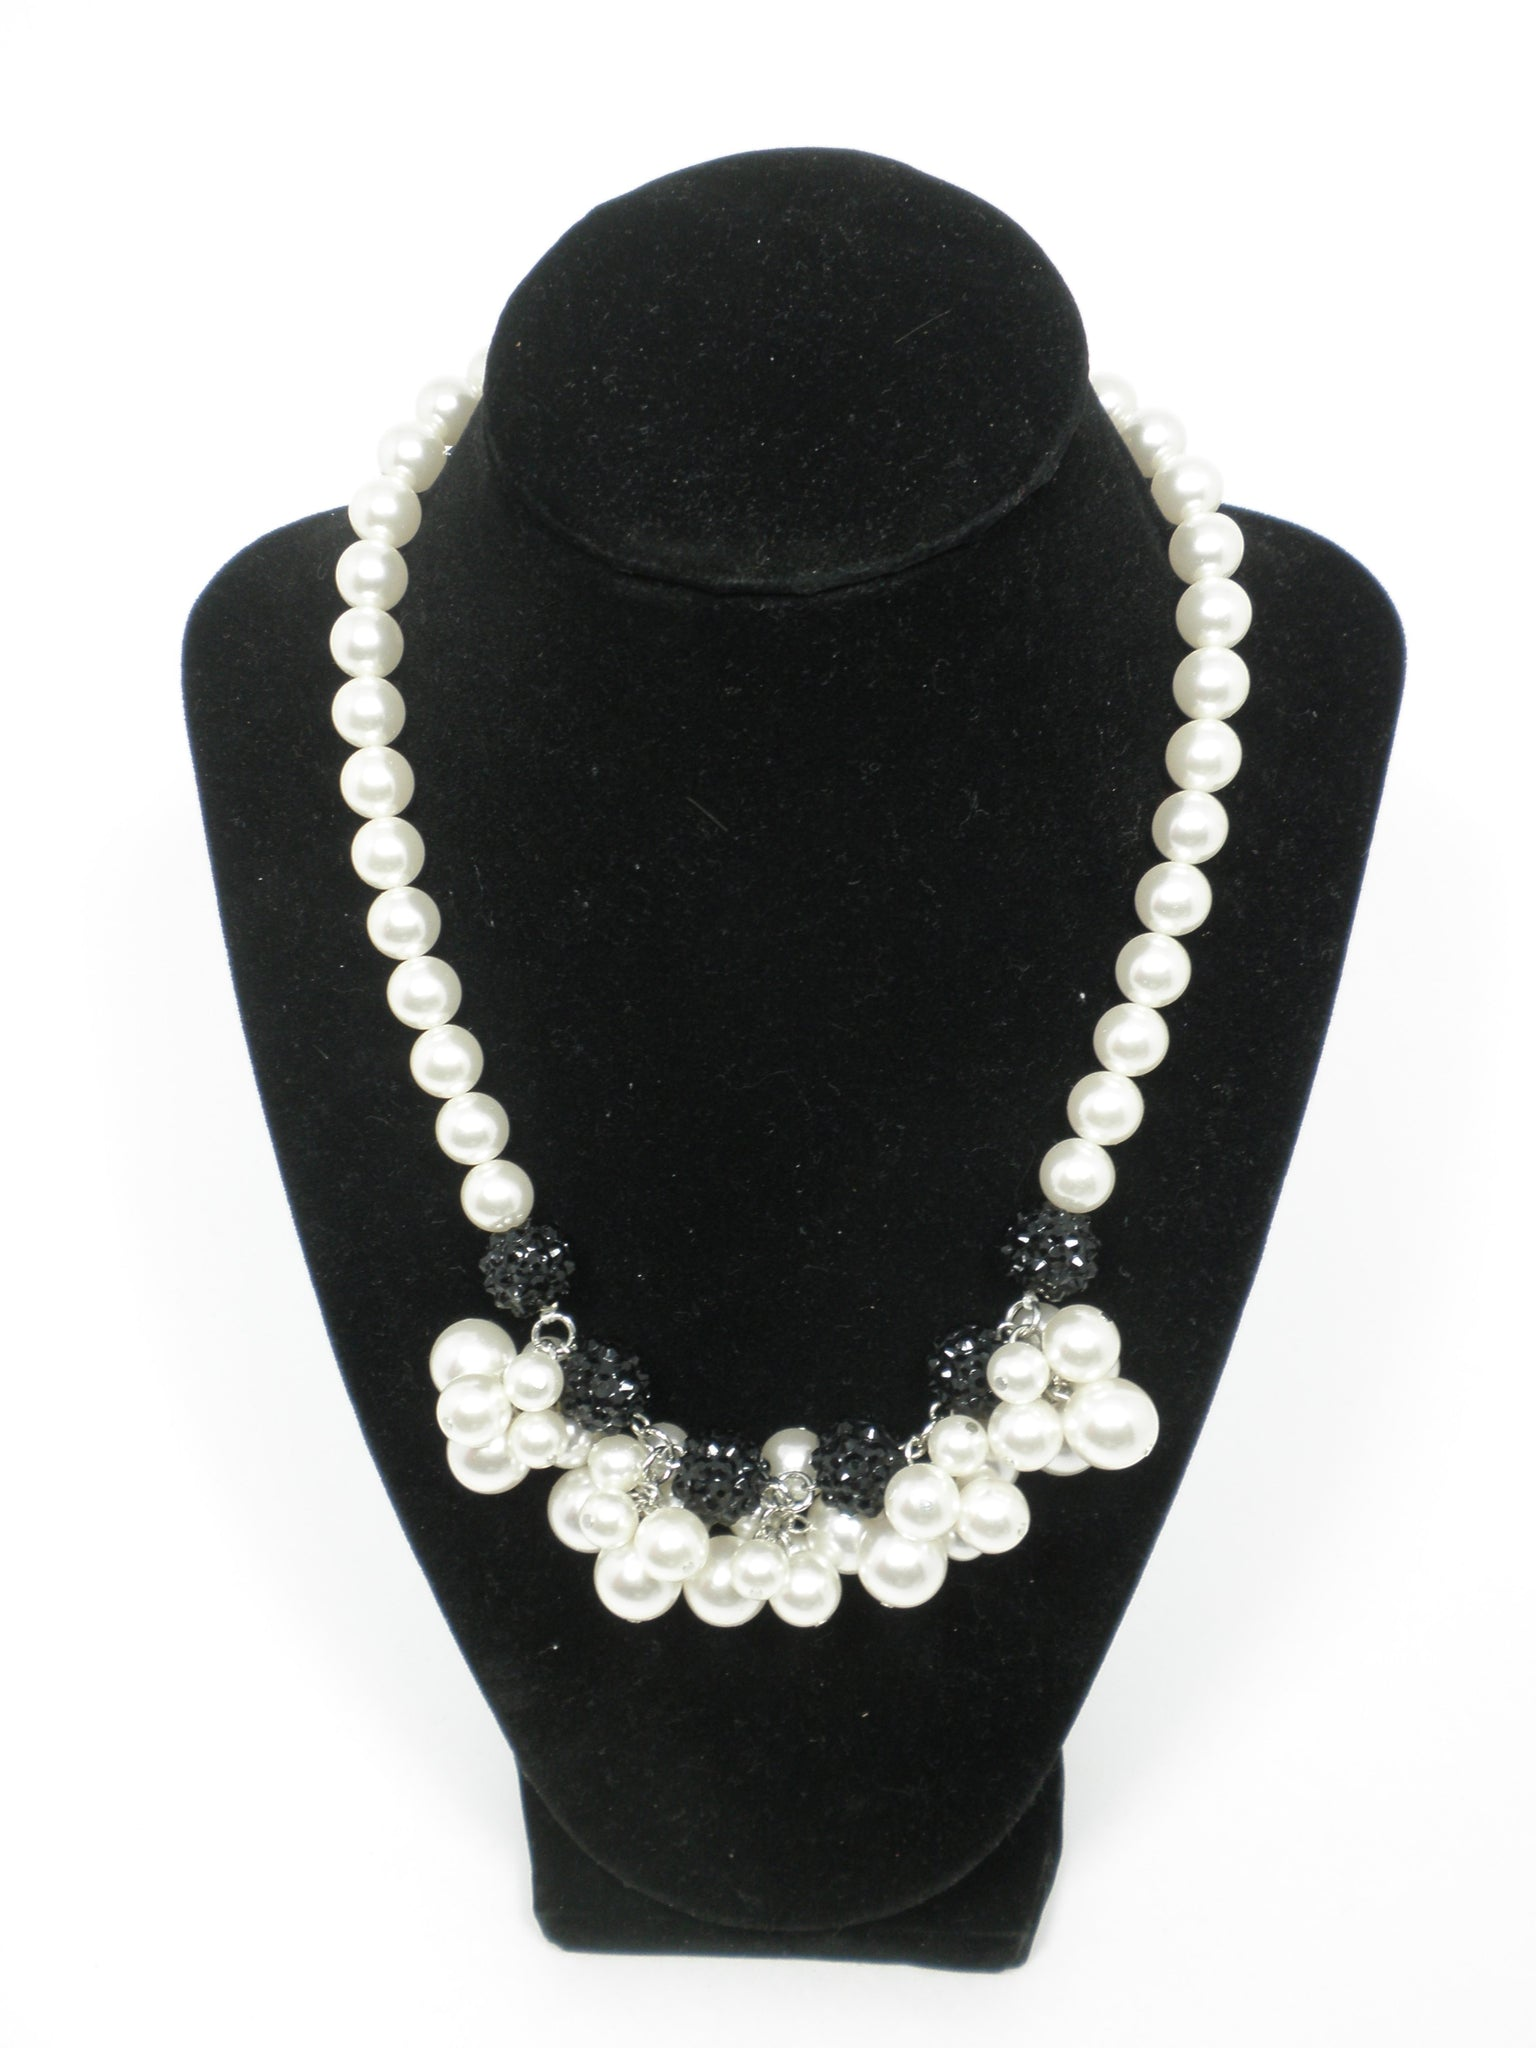 Chunky Black and White Pearl Necklace - The Fashion Foundation